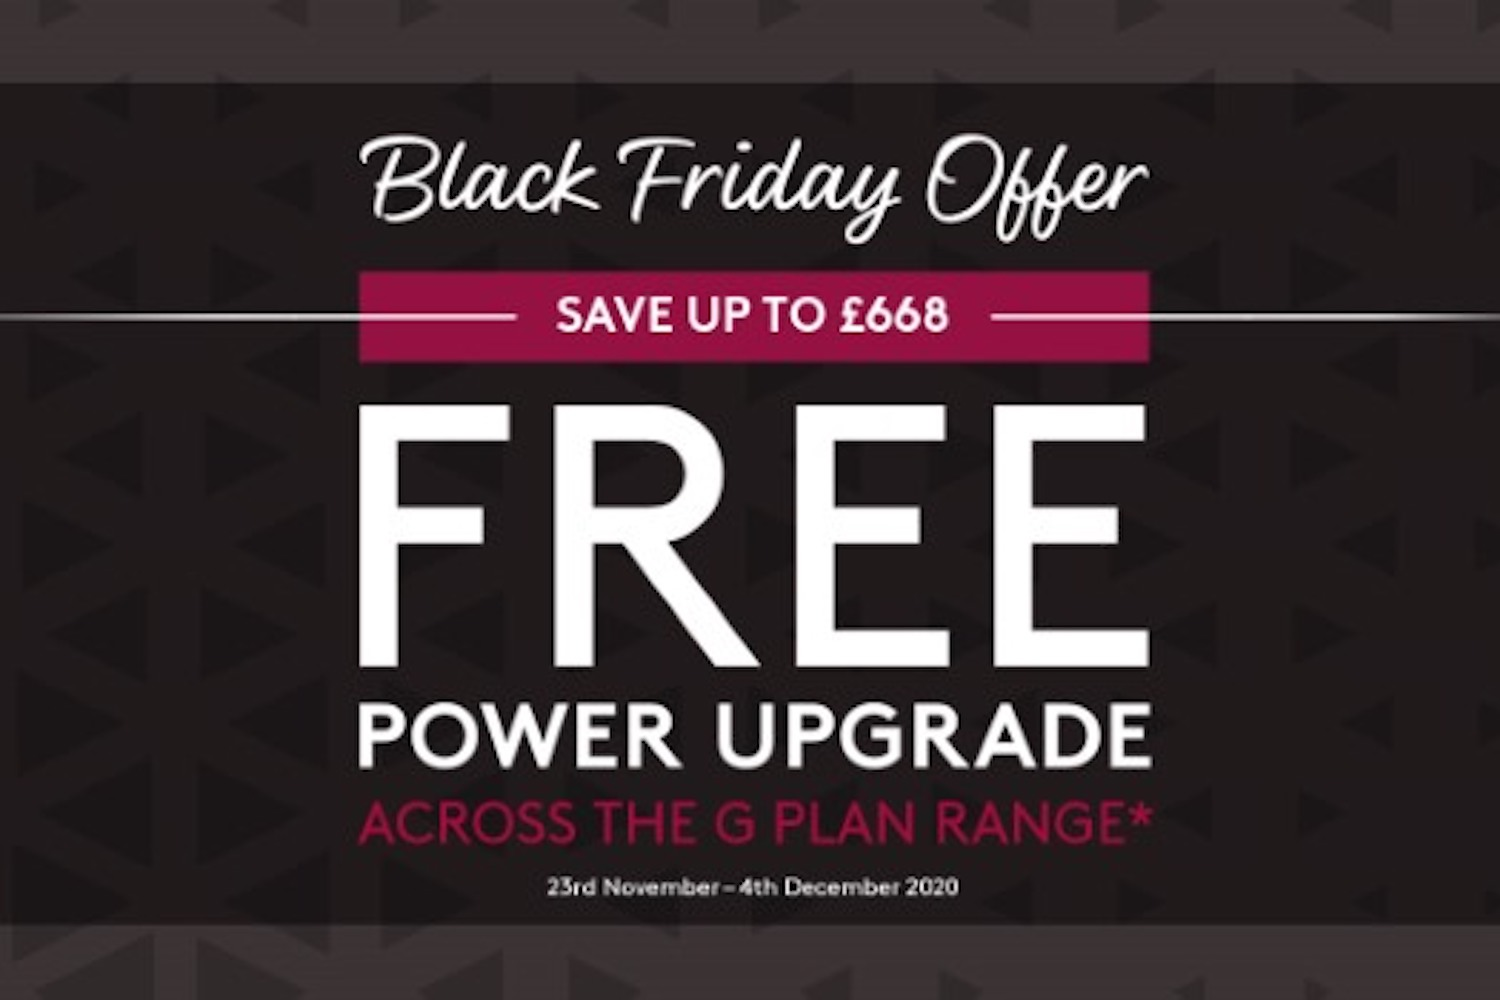 G Plan Black Friday free power upgrade